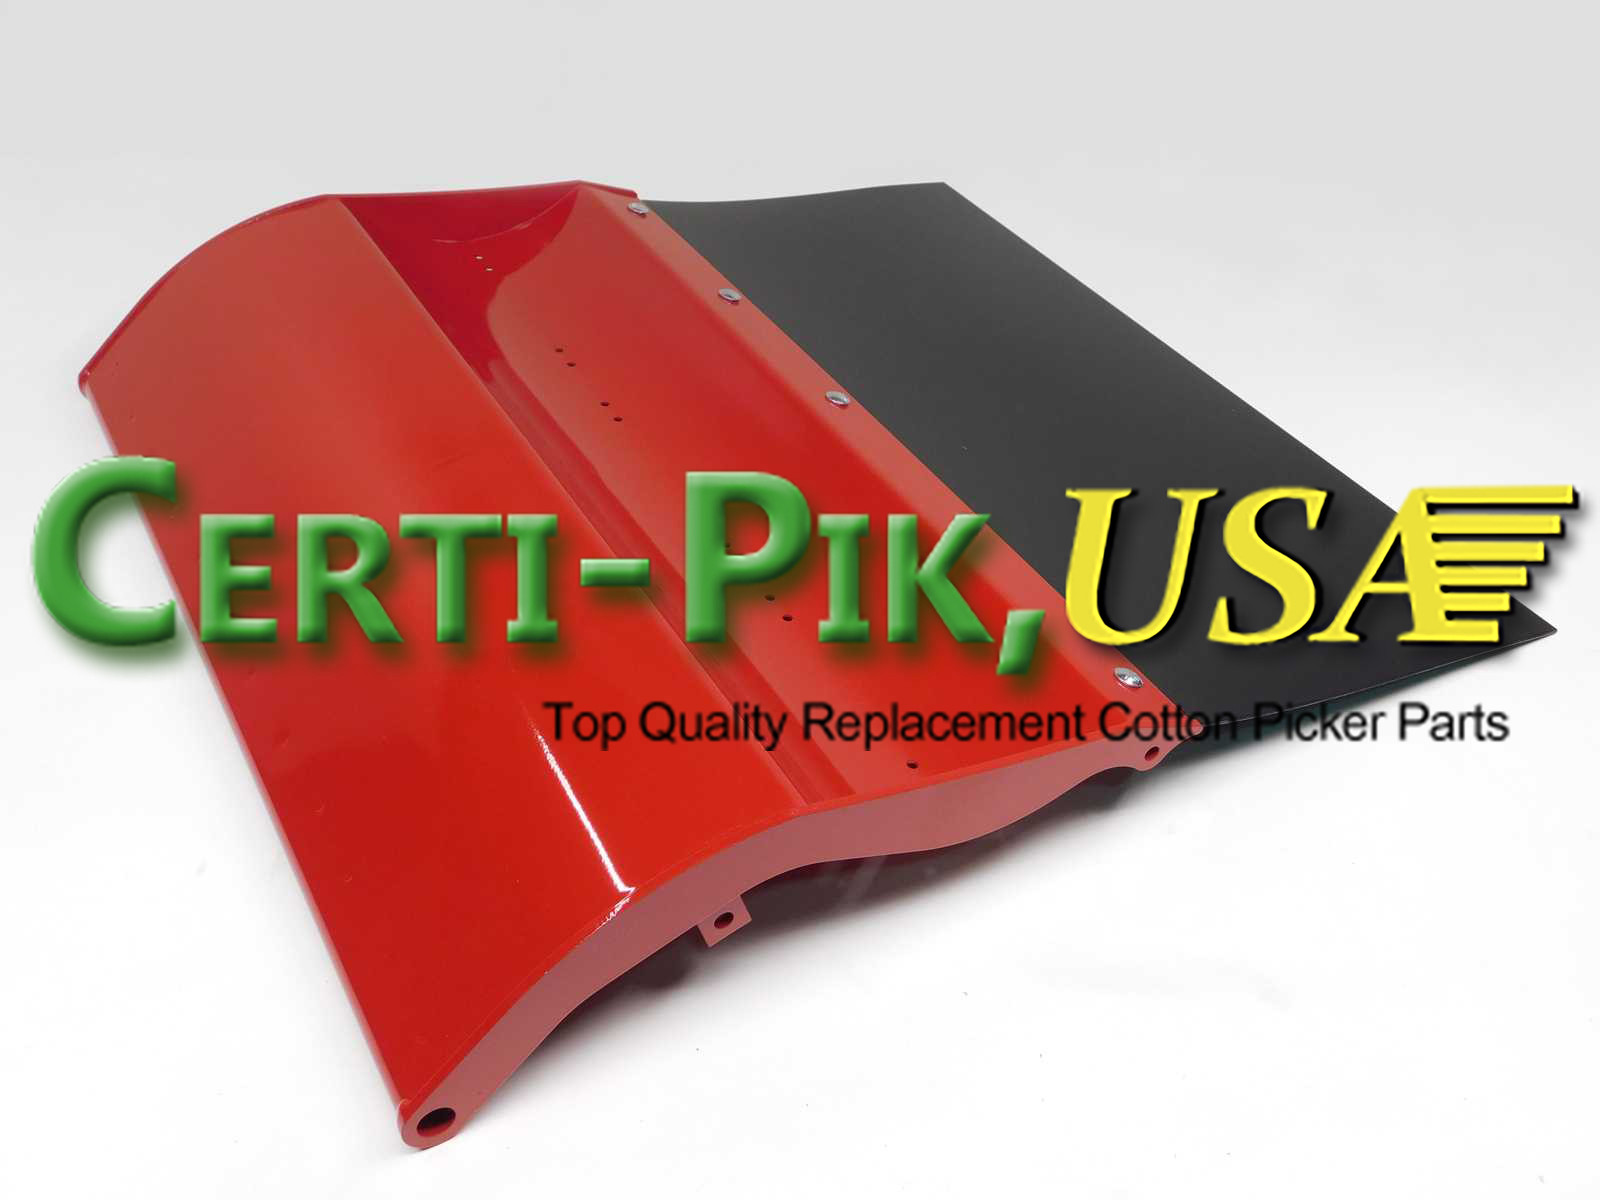 Picking Unit Cabinet: Certi-Pik